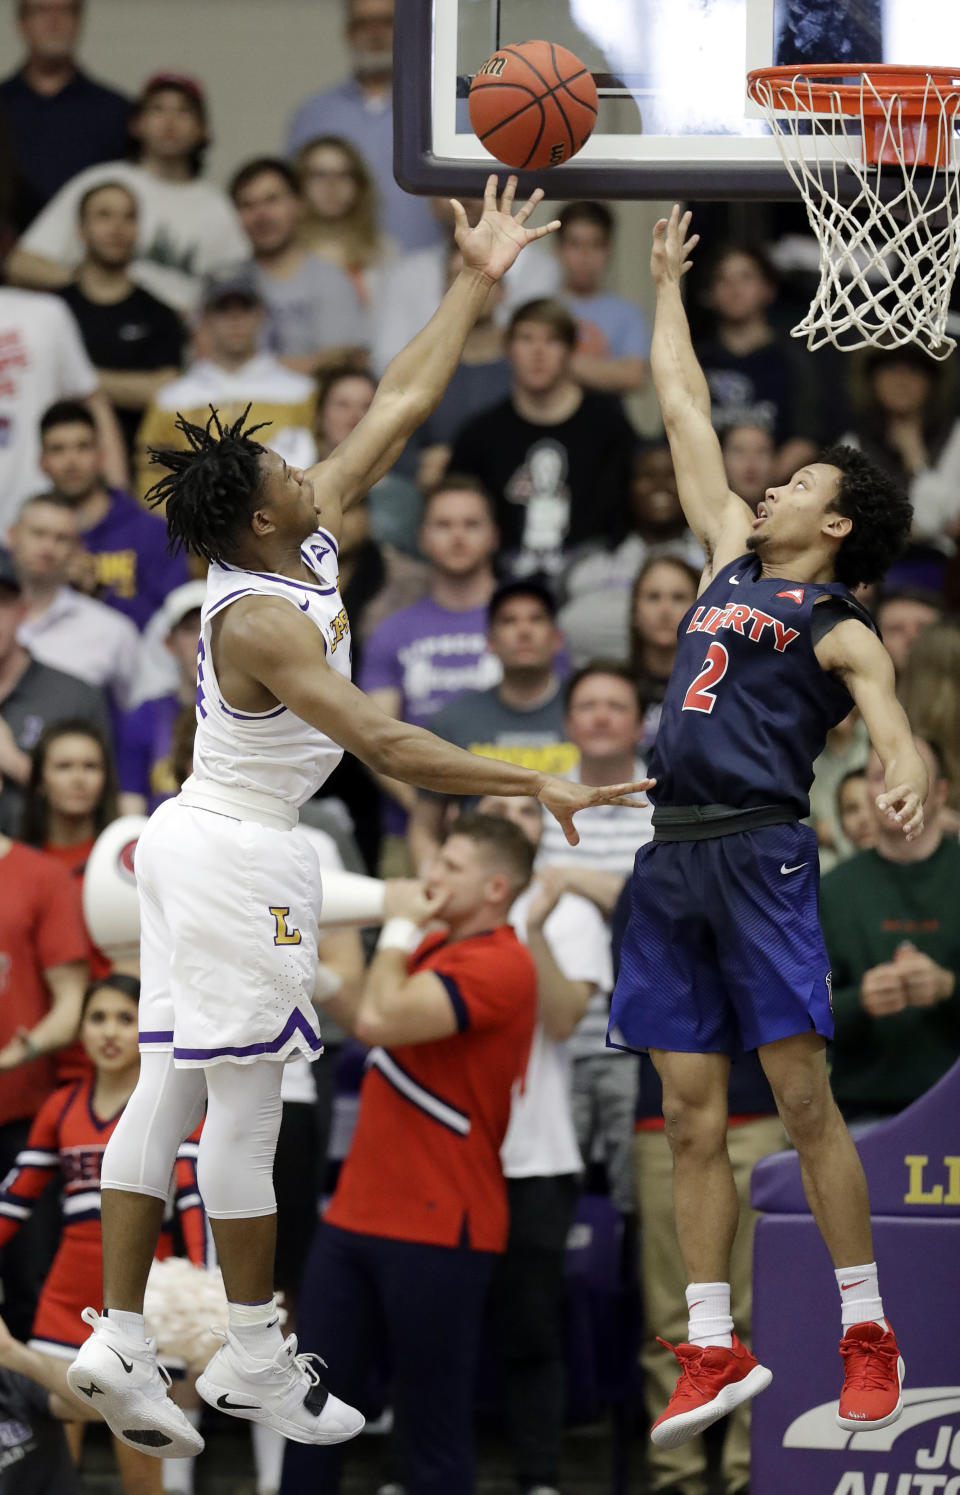 Lipscomb guard Kenny Cooper, left, shoots against Liberty guard Darius McGhee (2) in the first half of the Atlantic Sun NCAA college basketball tournament championship game Sunday, March 10, 2019, in Nashville, Tenn. (AP Photo/Mark Humphrey)